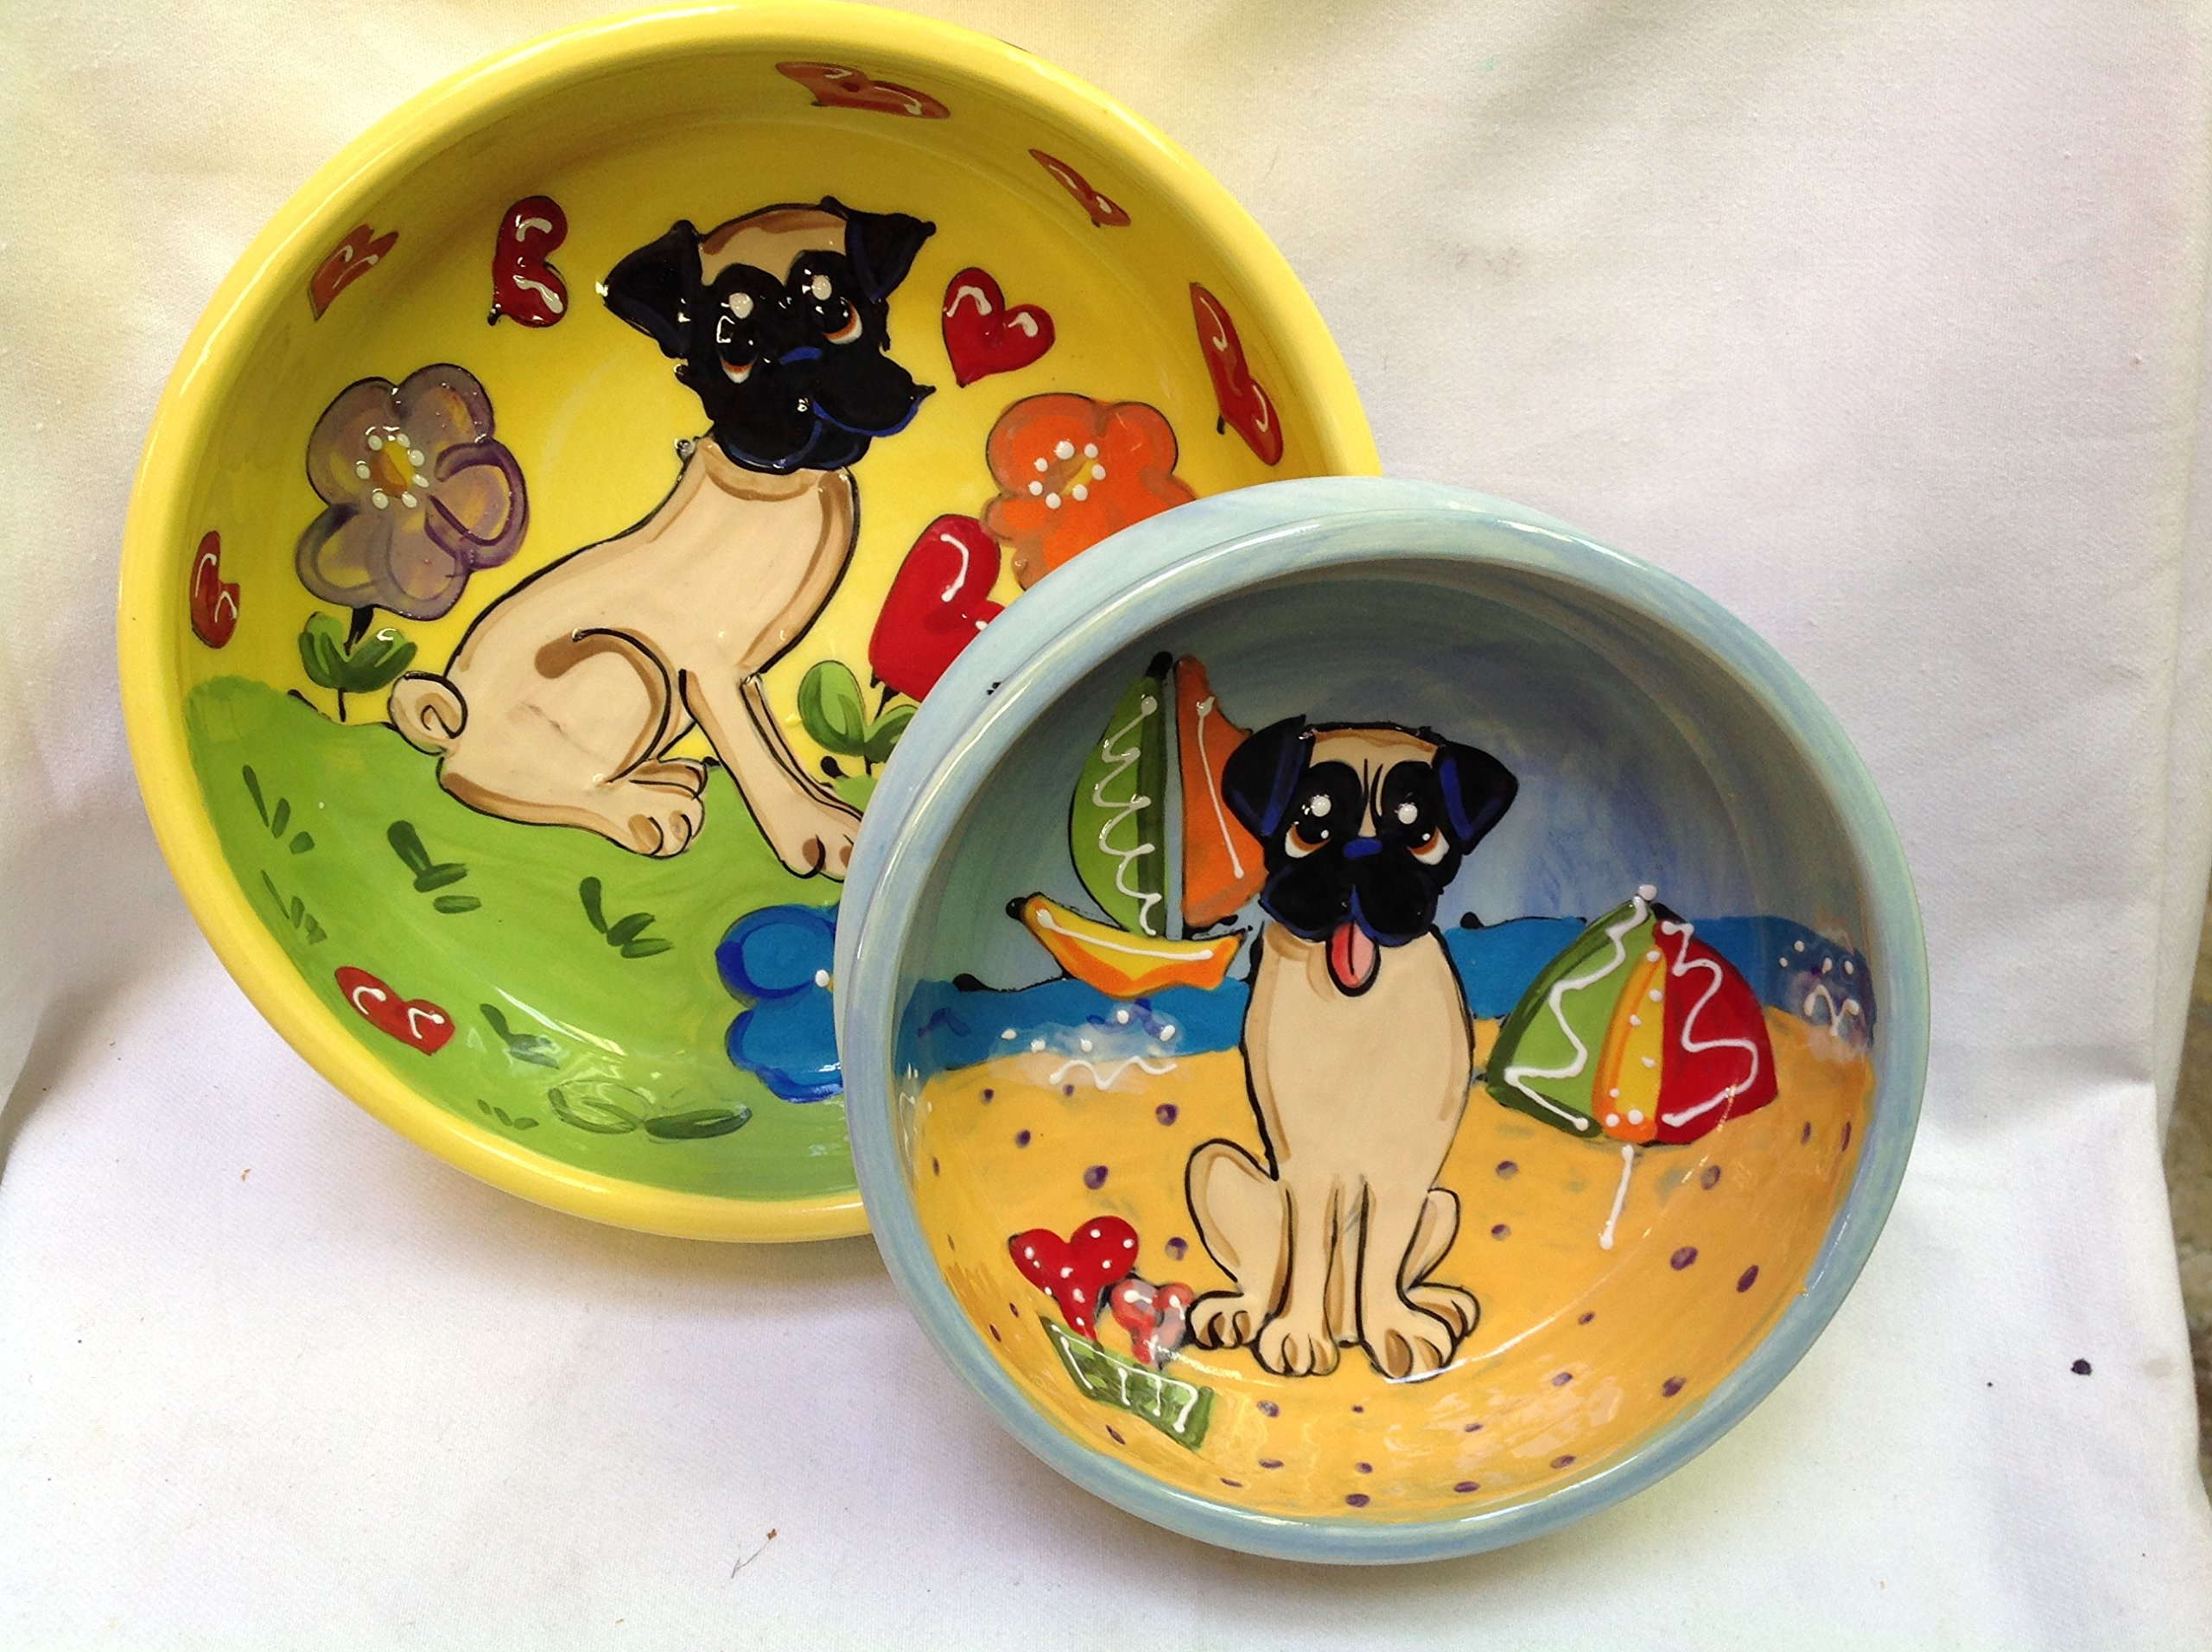 Pug 8''/6'' Pet Bowls for Food/Water. Personalized at no Charge. Signed by Artist, Debby Carman.